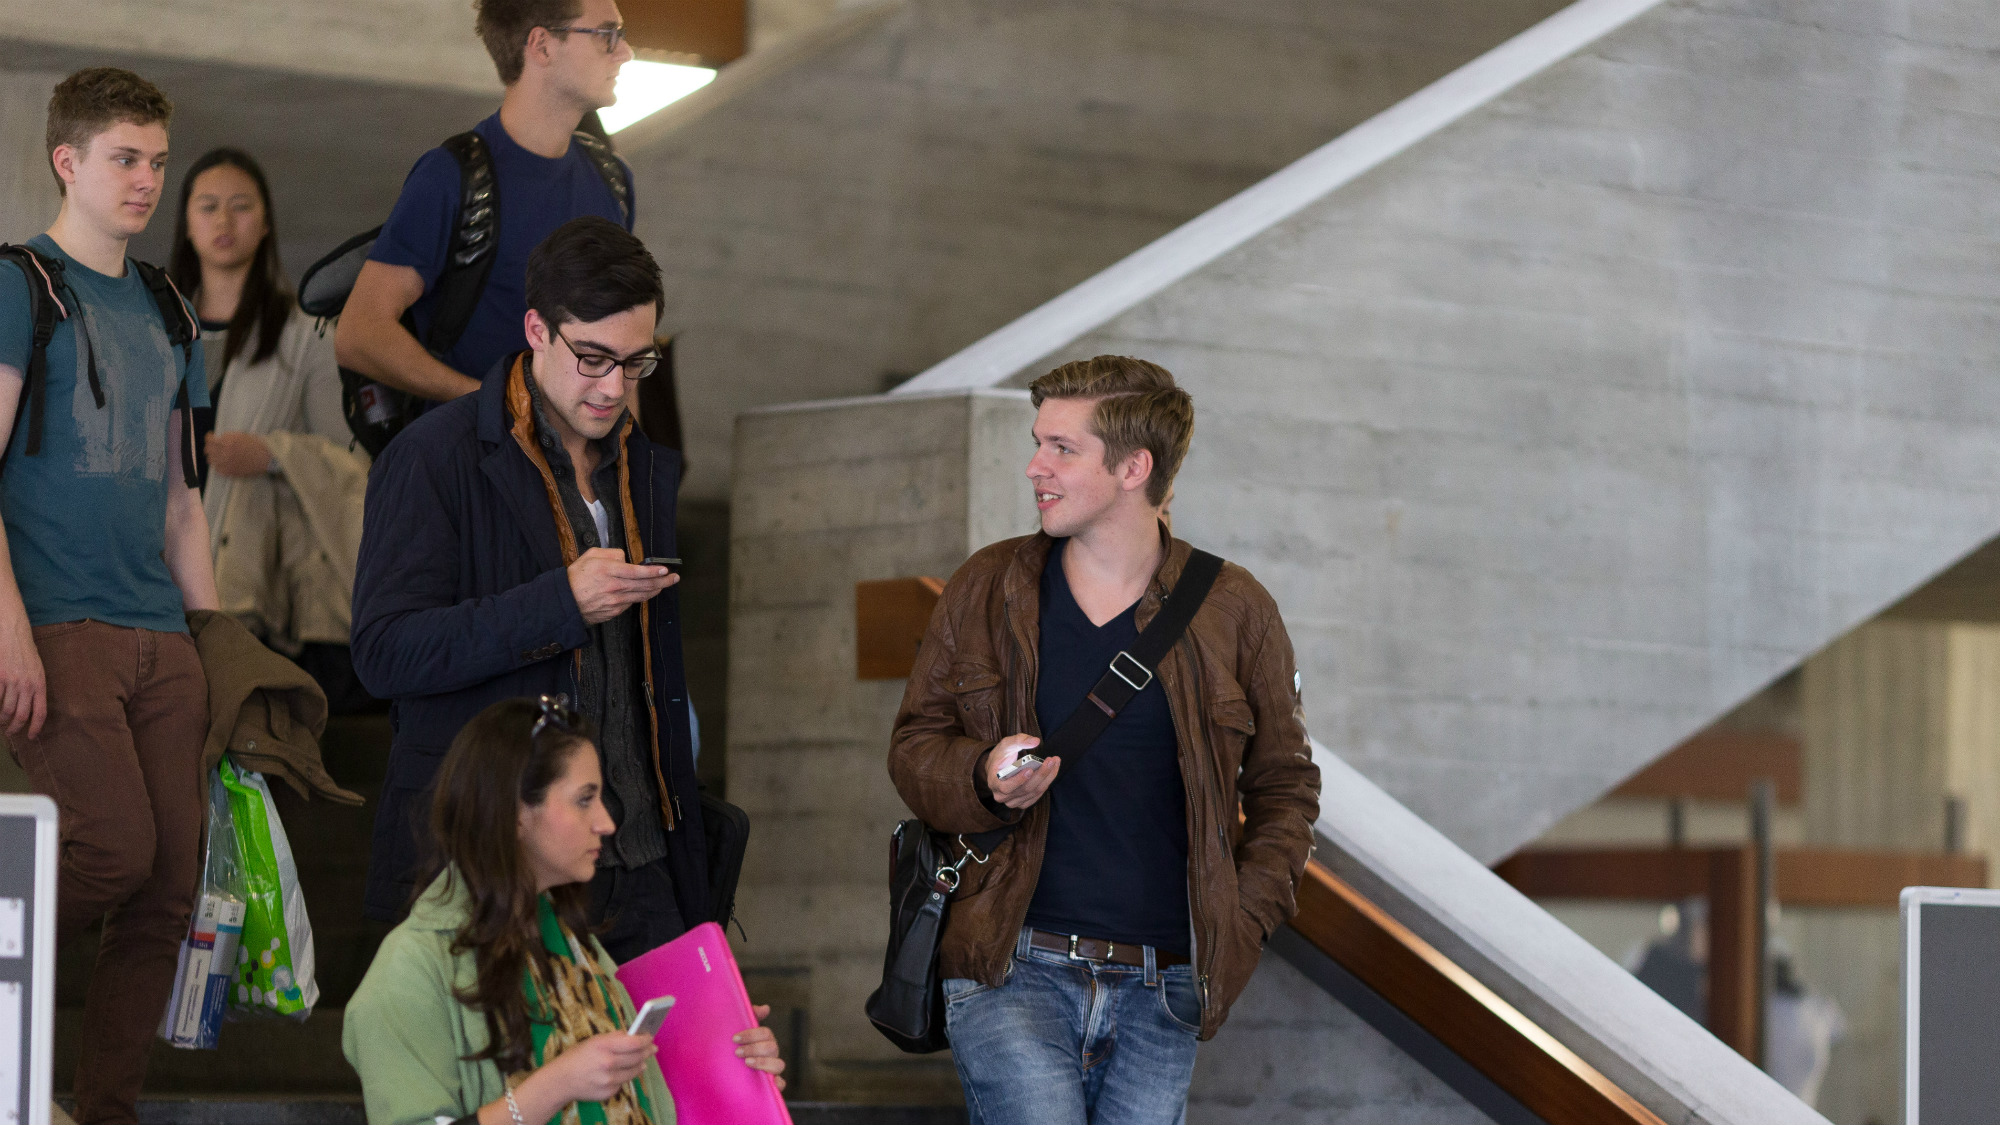 Students on the stairs in the Main Building at the University of St.Gallen (HSG)